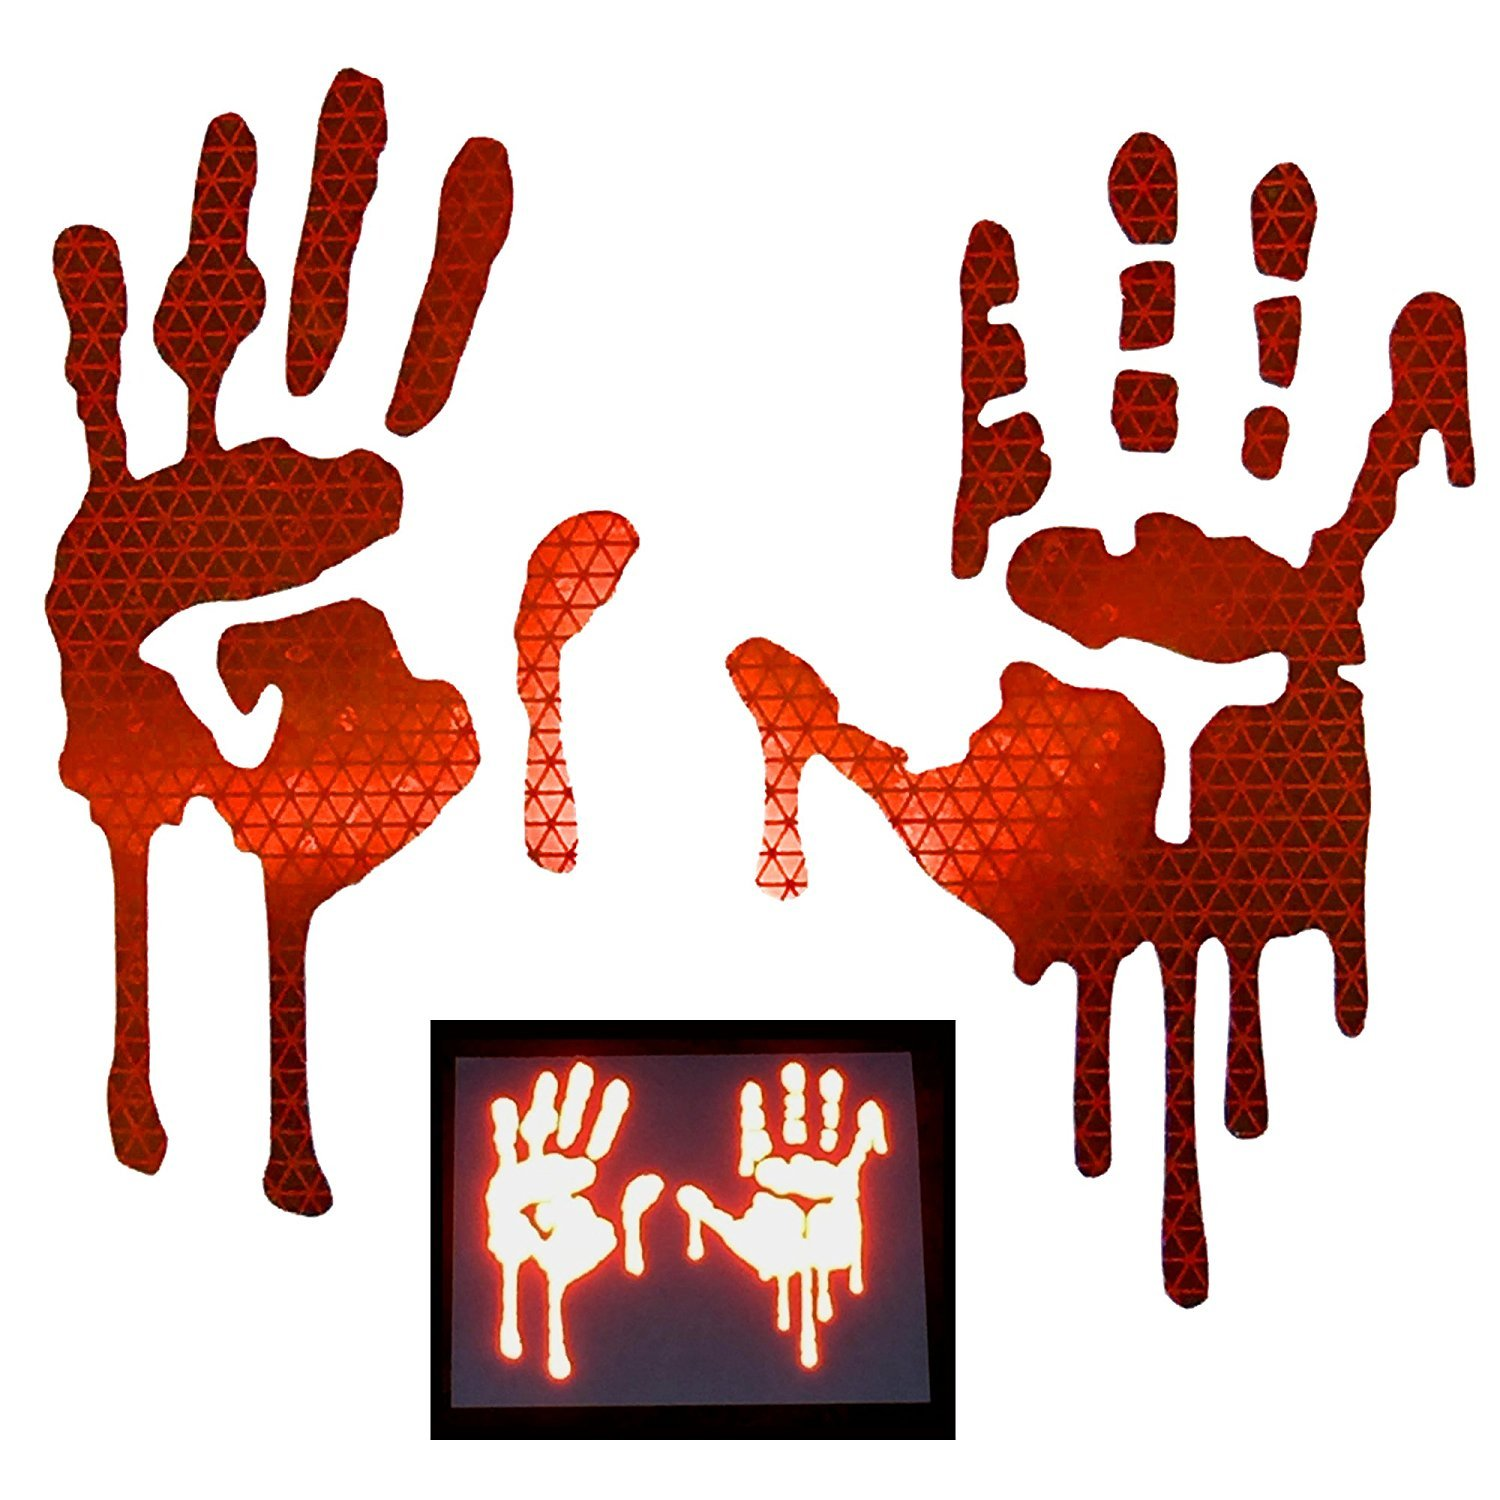 Customtaylor33 high intensity grade reflective bloody dripping hands decals for helmets windscreens rear windows bumper stickers 3 inches height red